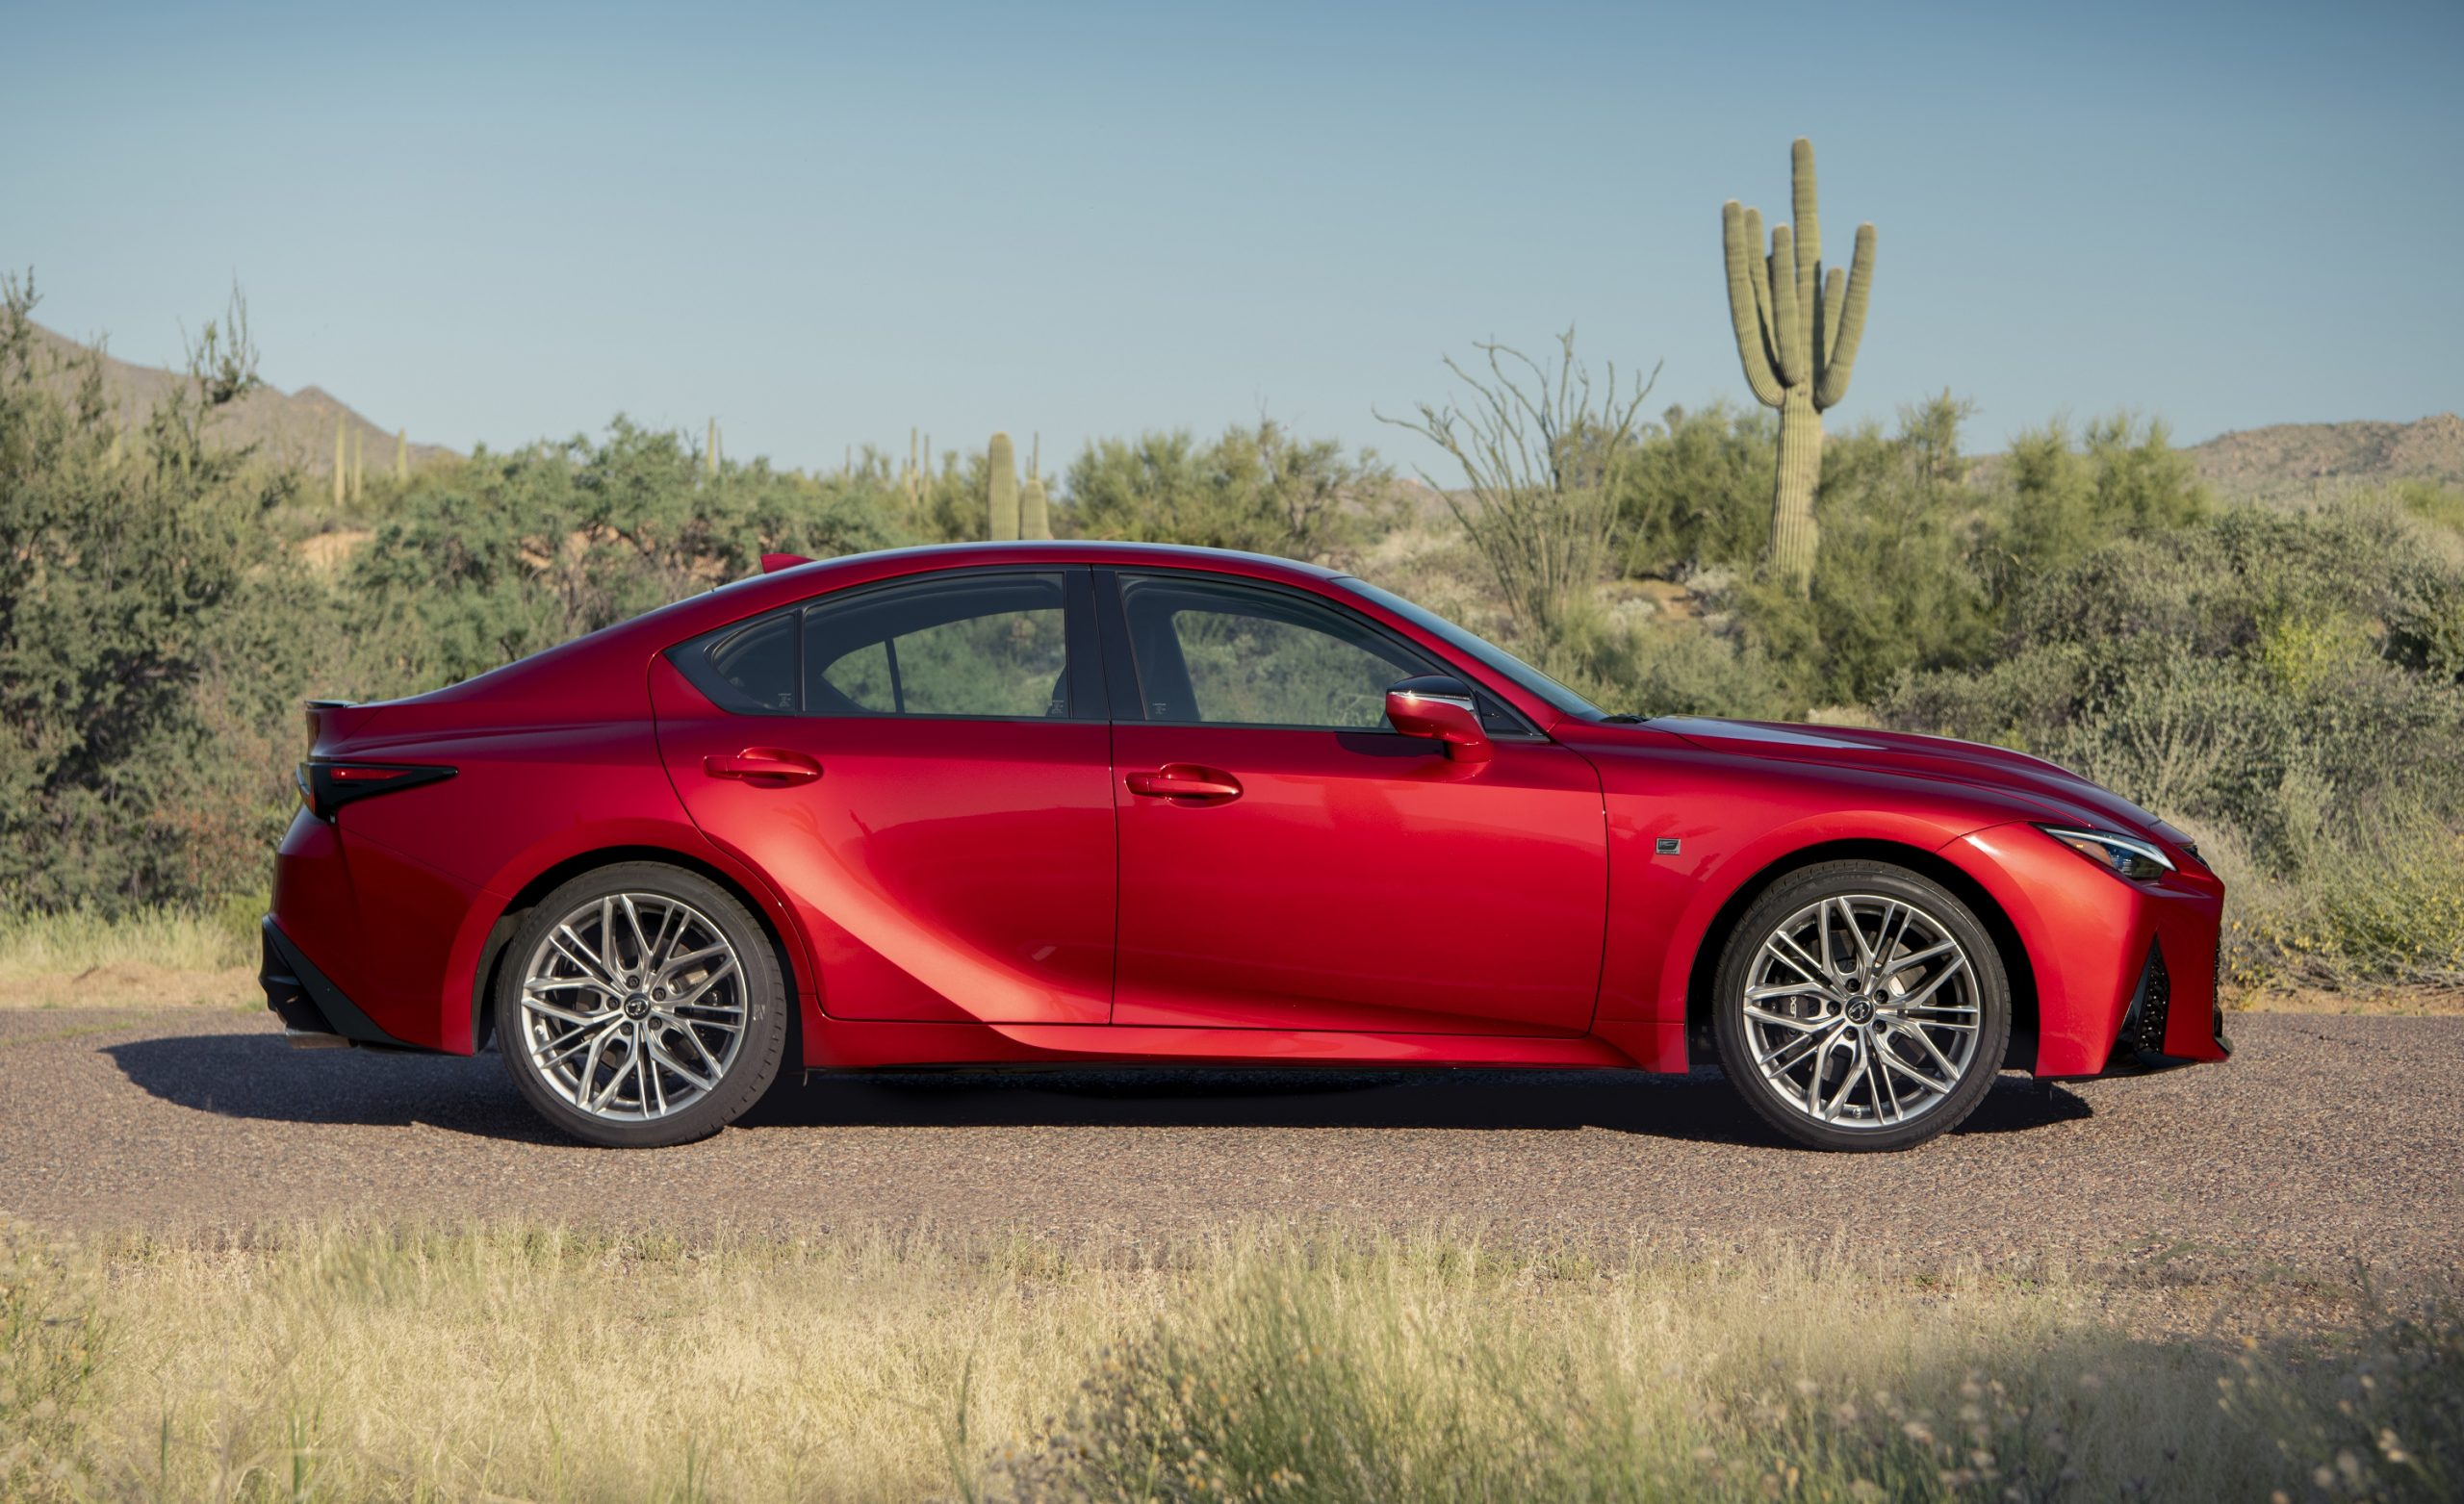 A red Lexus IS 500 shot in profile in the desert with cacti in the background